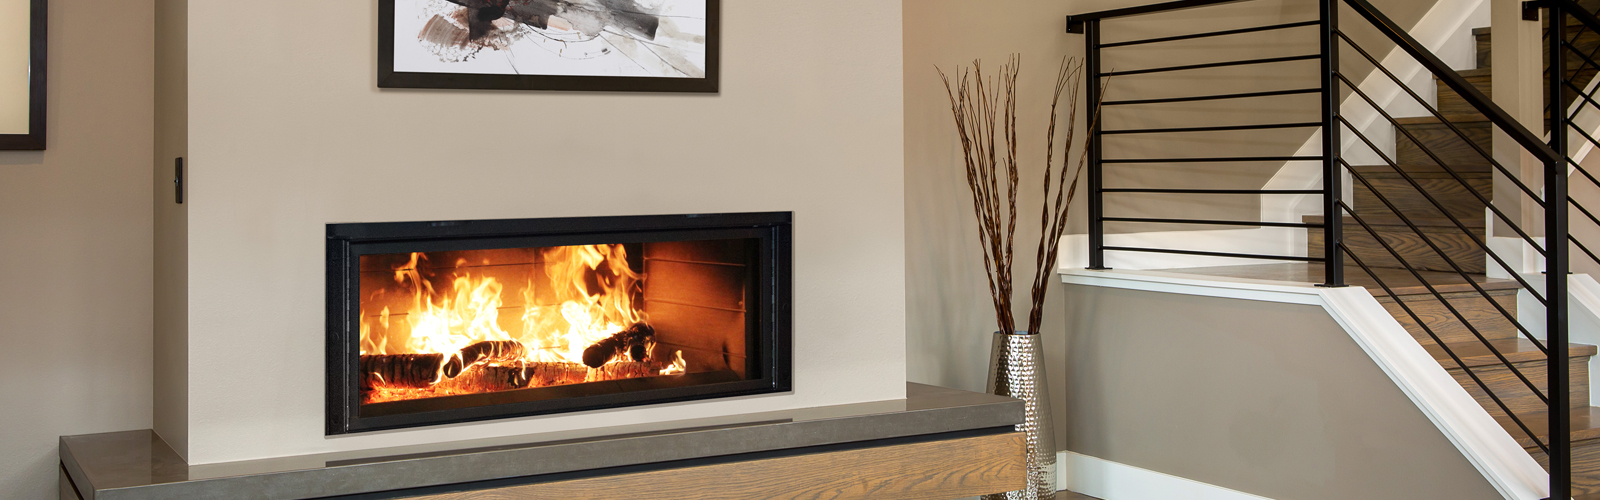 custom fireplaces ottawa hubert u0027s fireplaces